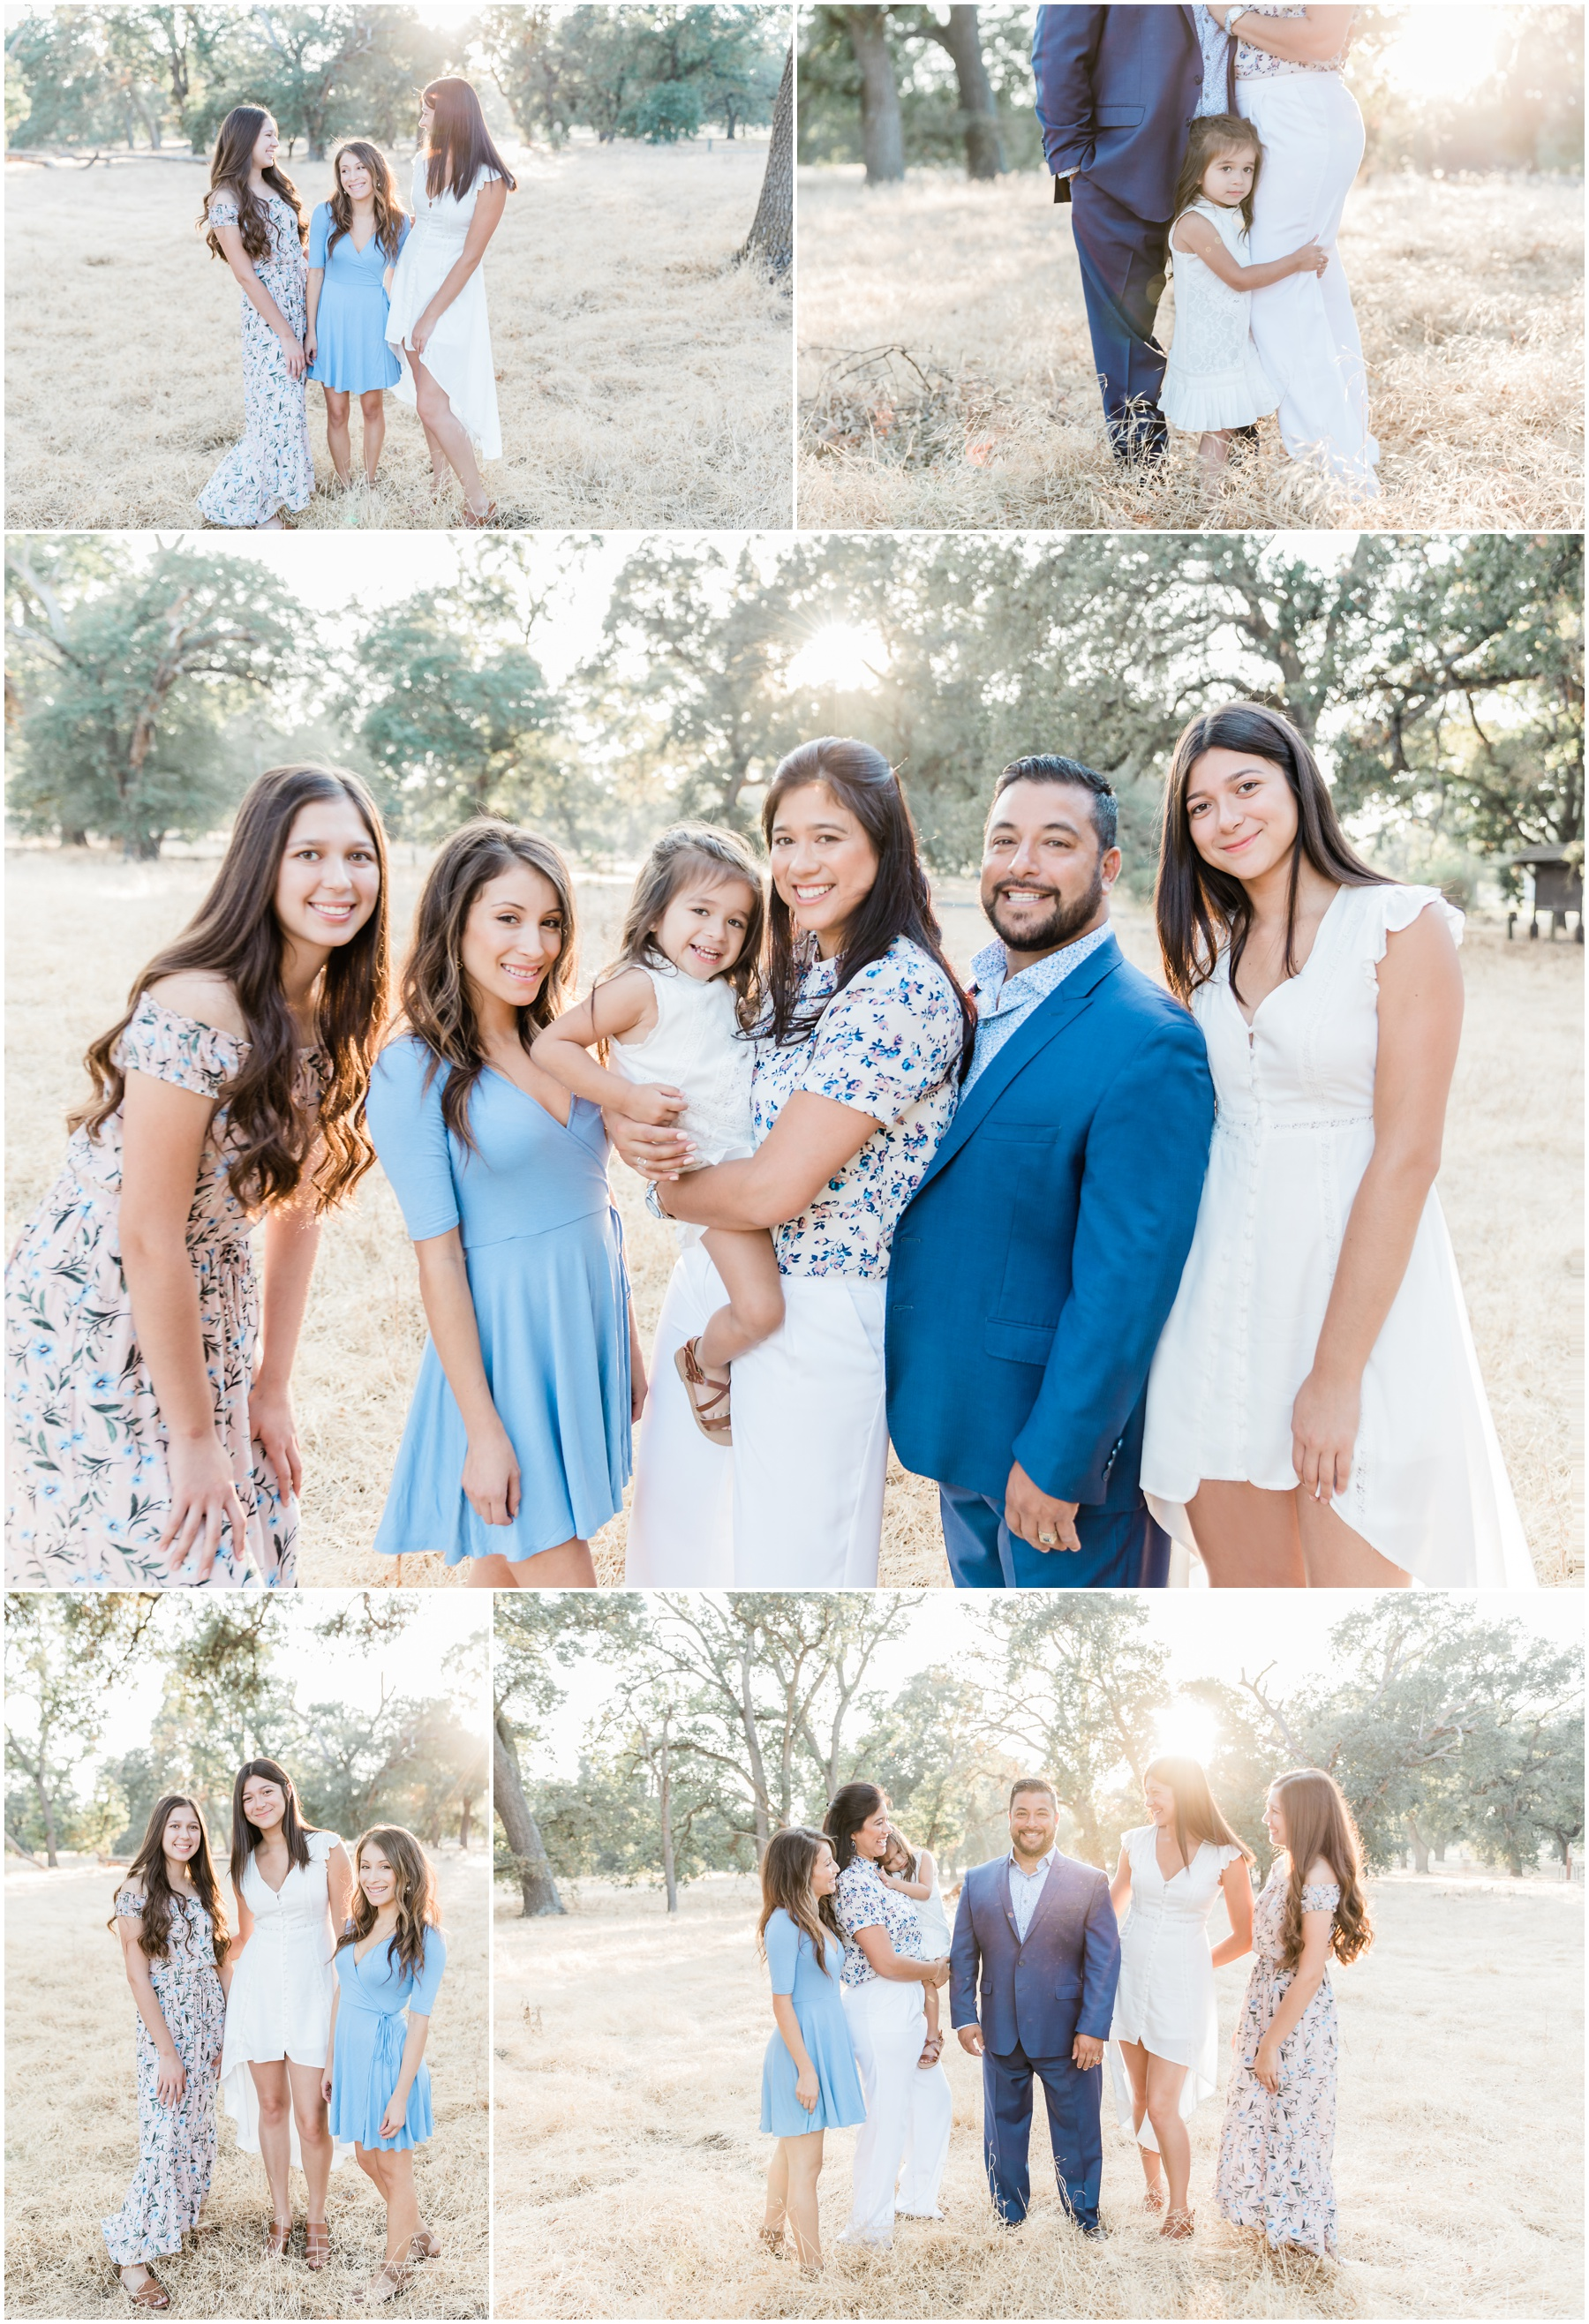 Family photo outfit inspo, Outdoor family portraits, family of 6, Photography by KCM Photography, a fine art portrait and wedding photographer based in Lodi, CA